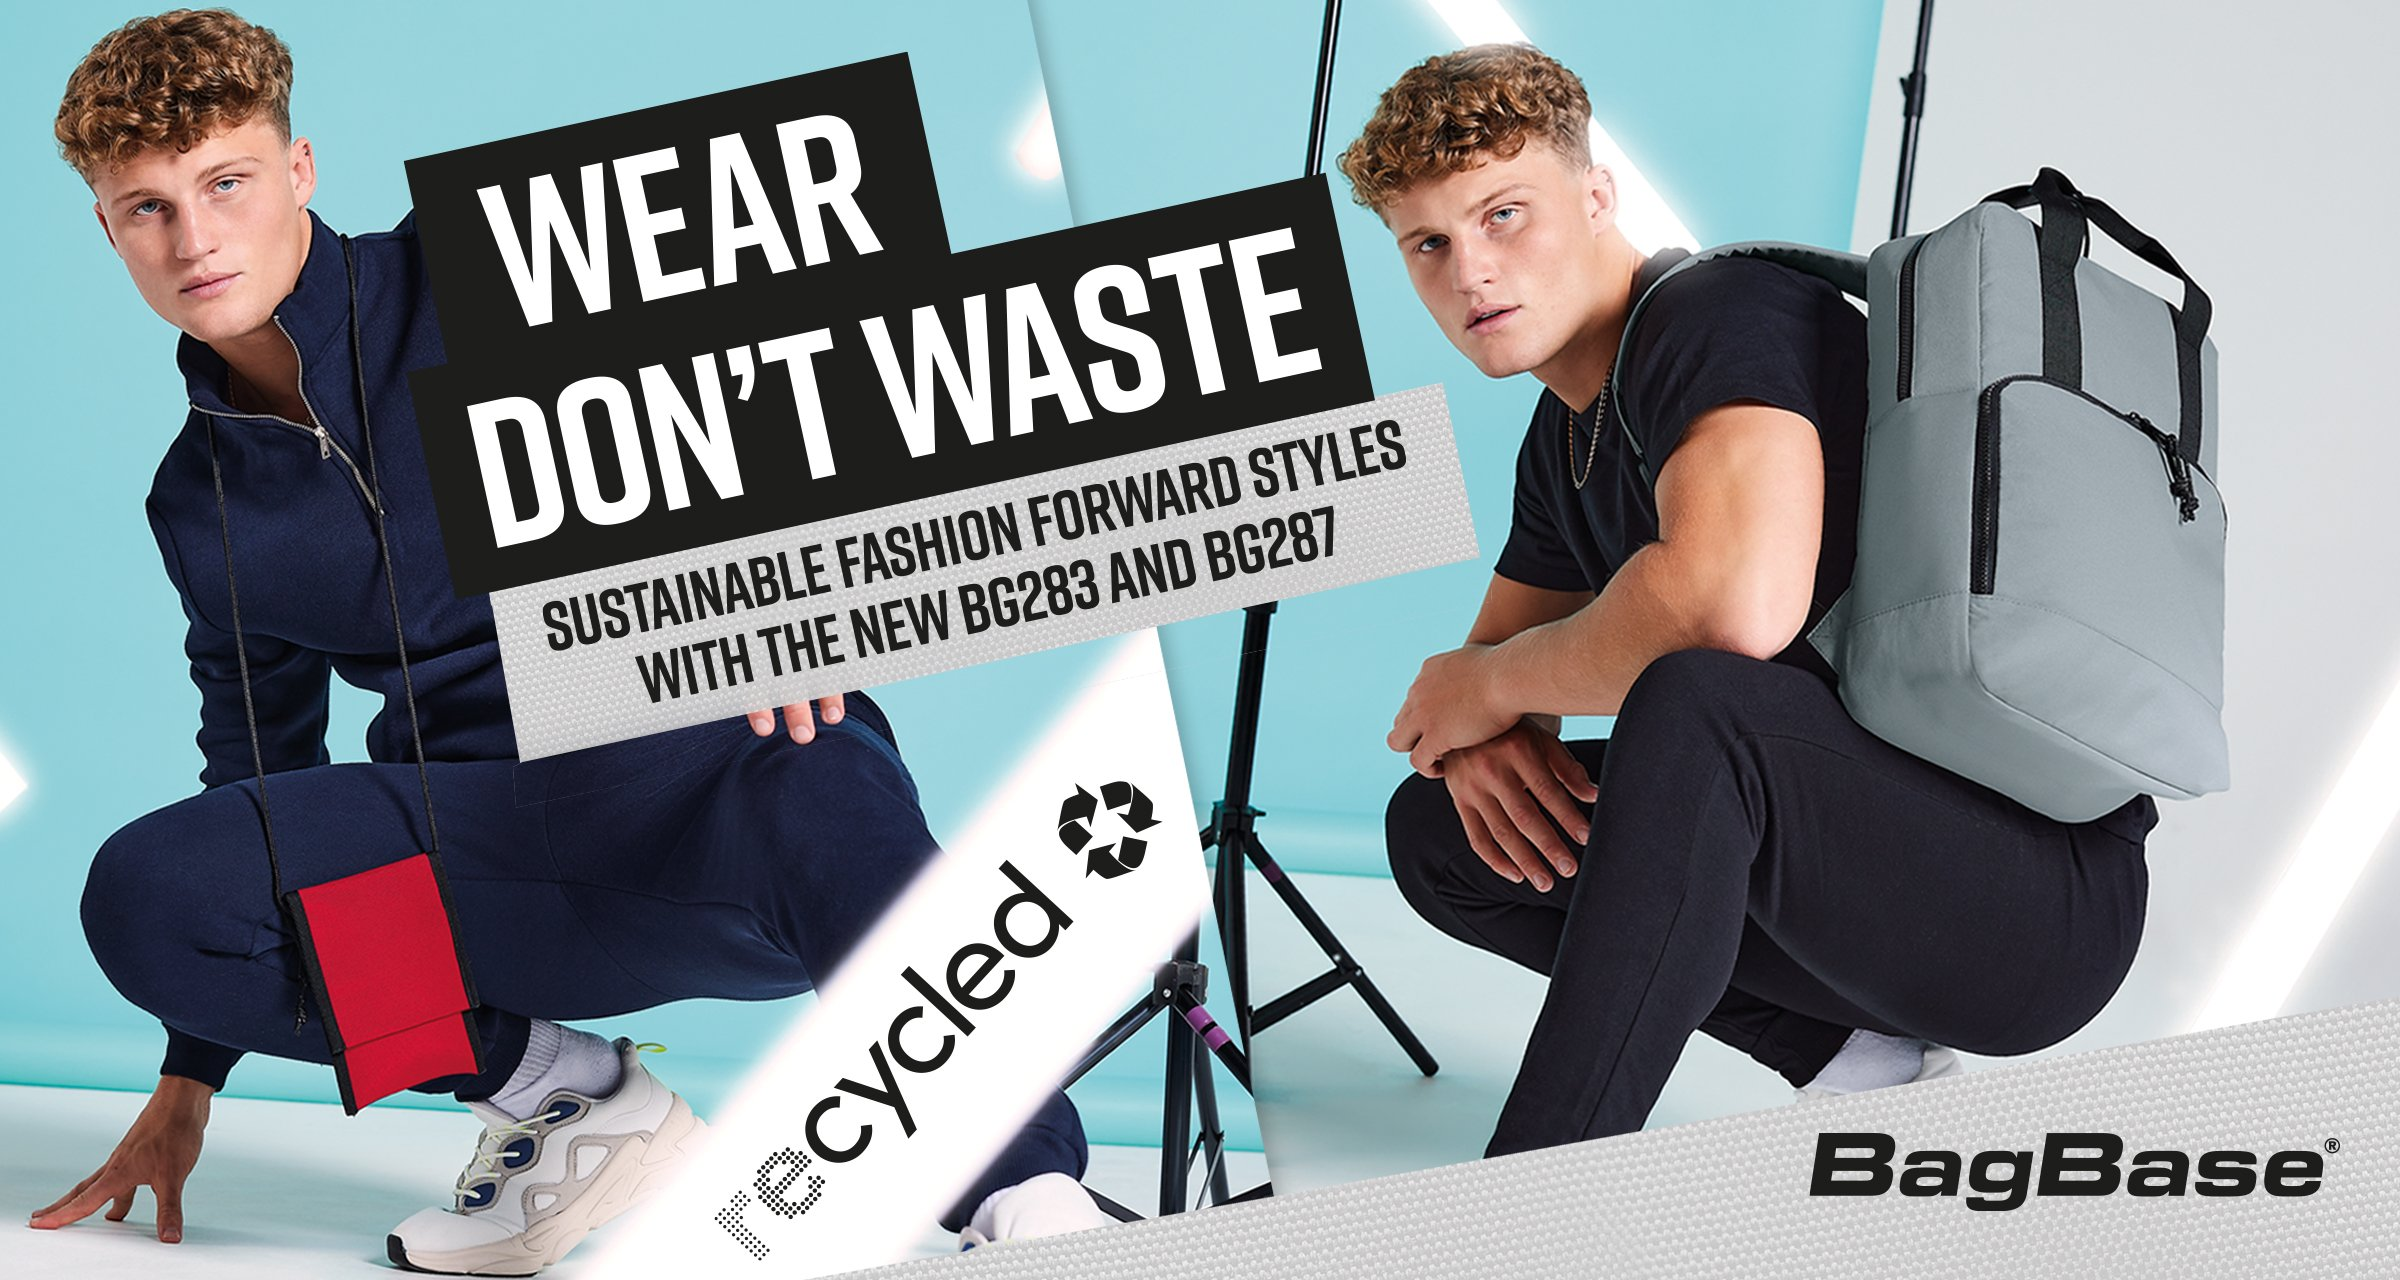 BagBase recycled wear don't waste campaign